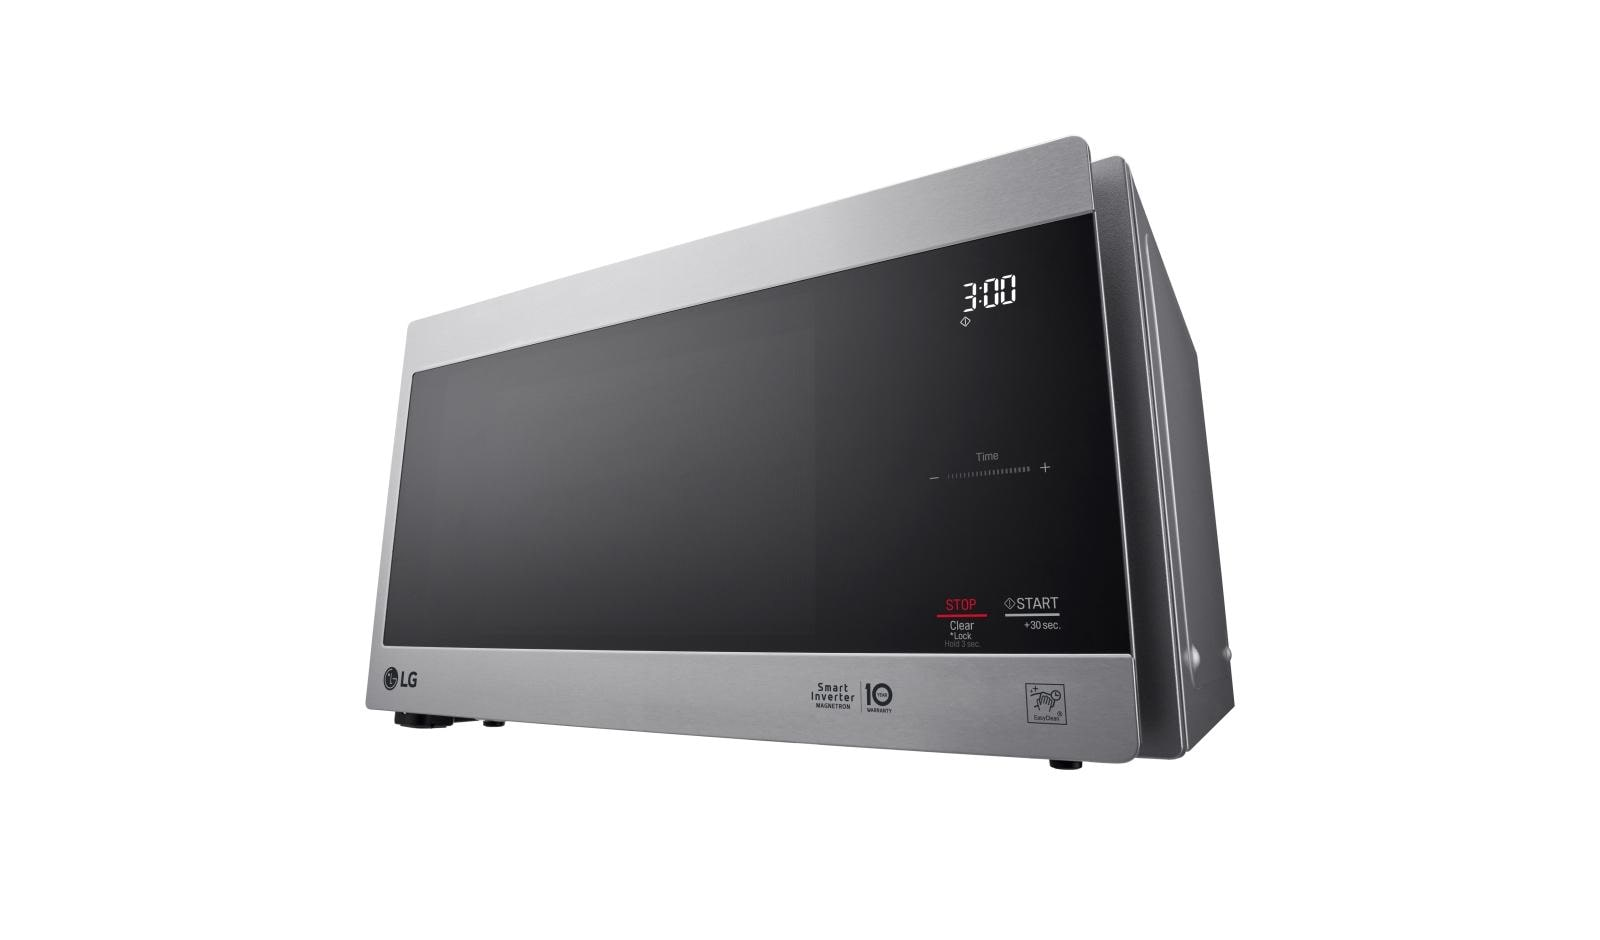 Lg Lmc0975st Save Up To 500 W Holiday Sales Usa Inverter Micro Rack Mount Youtube Solar Diagram